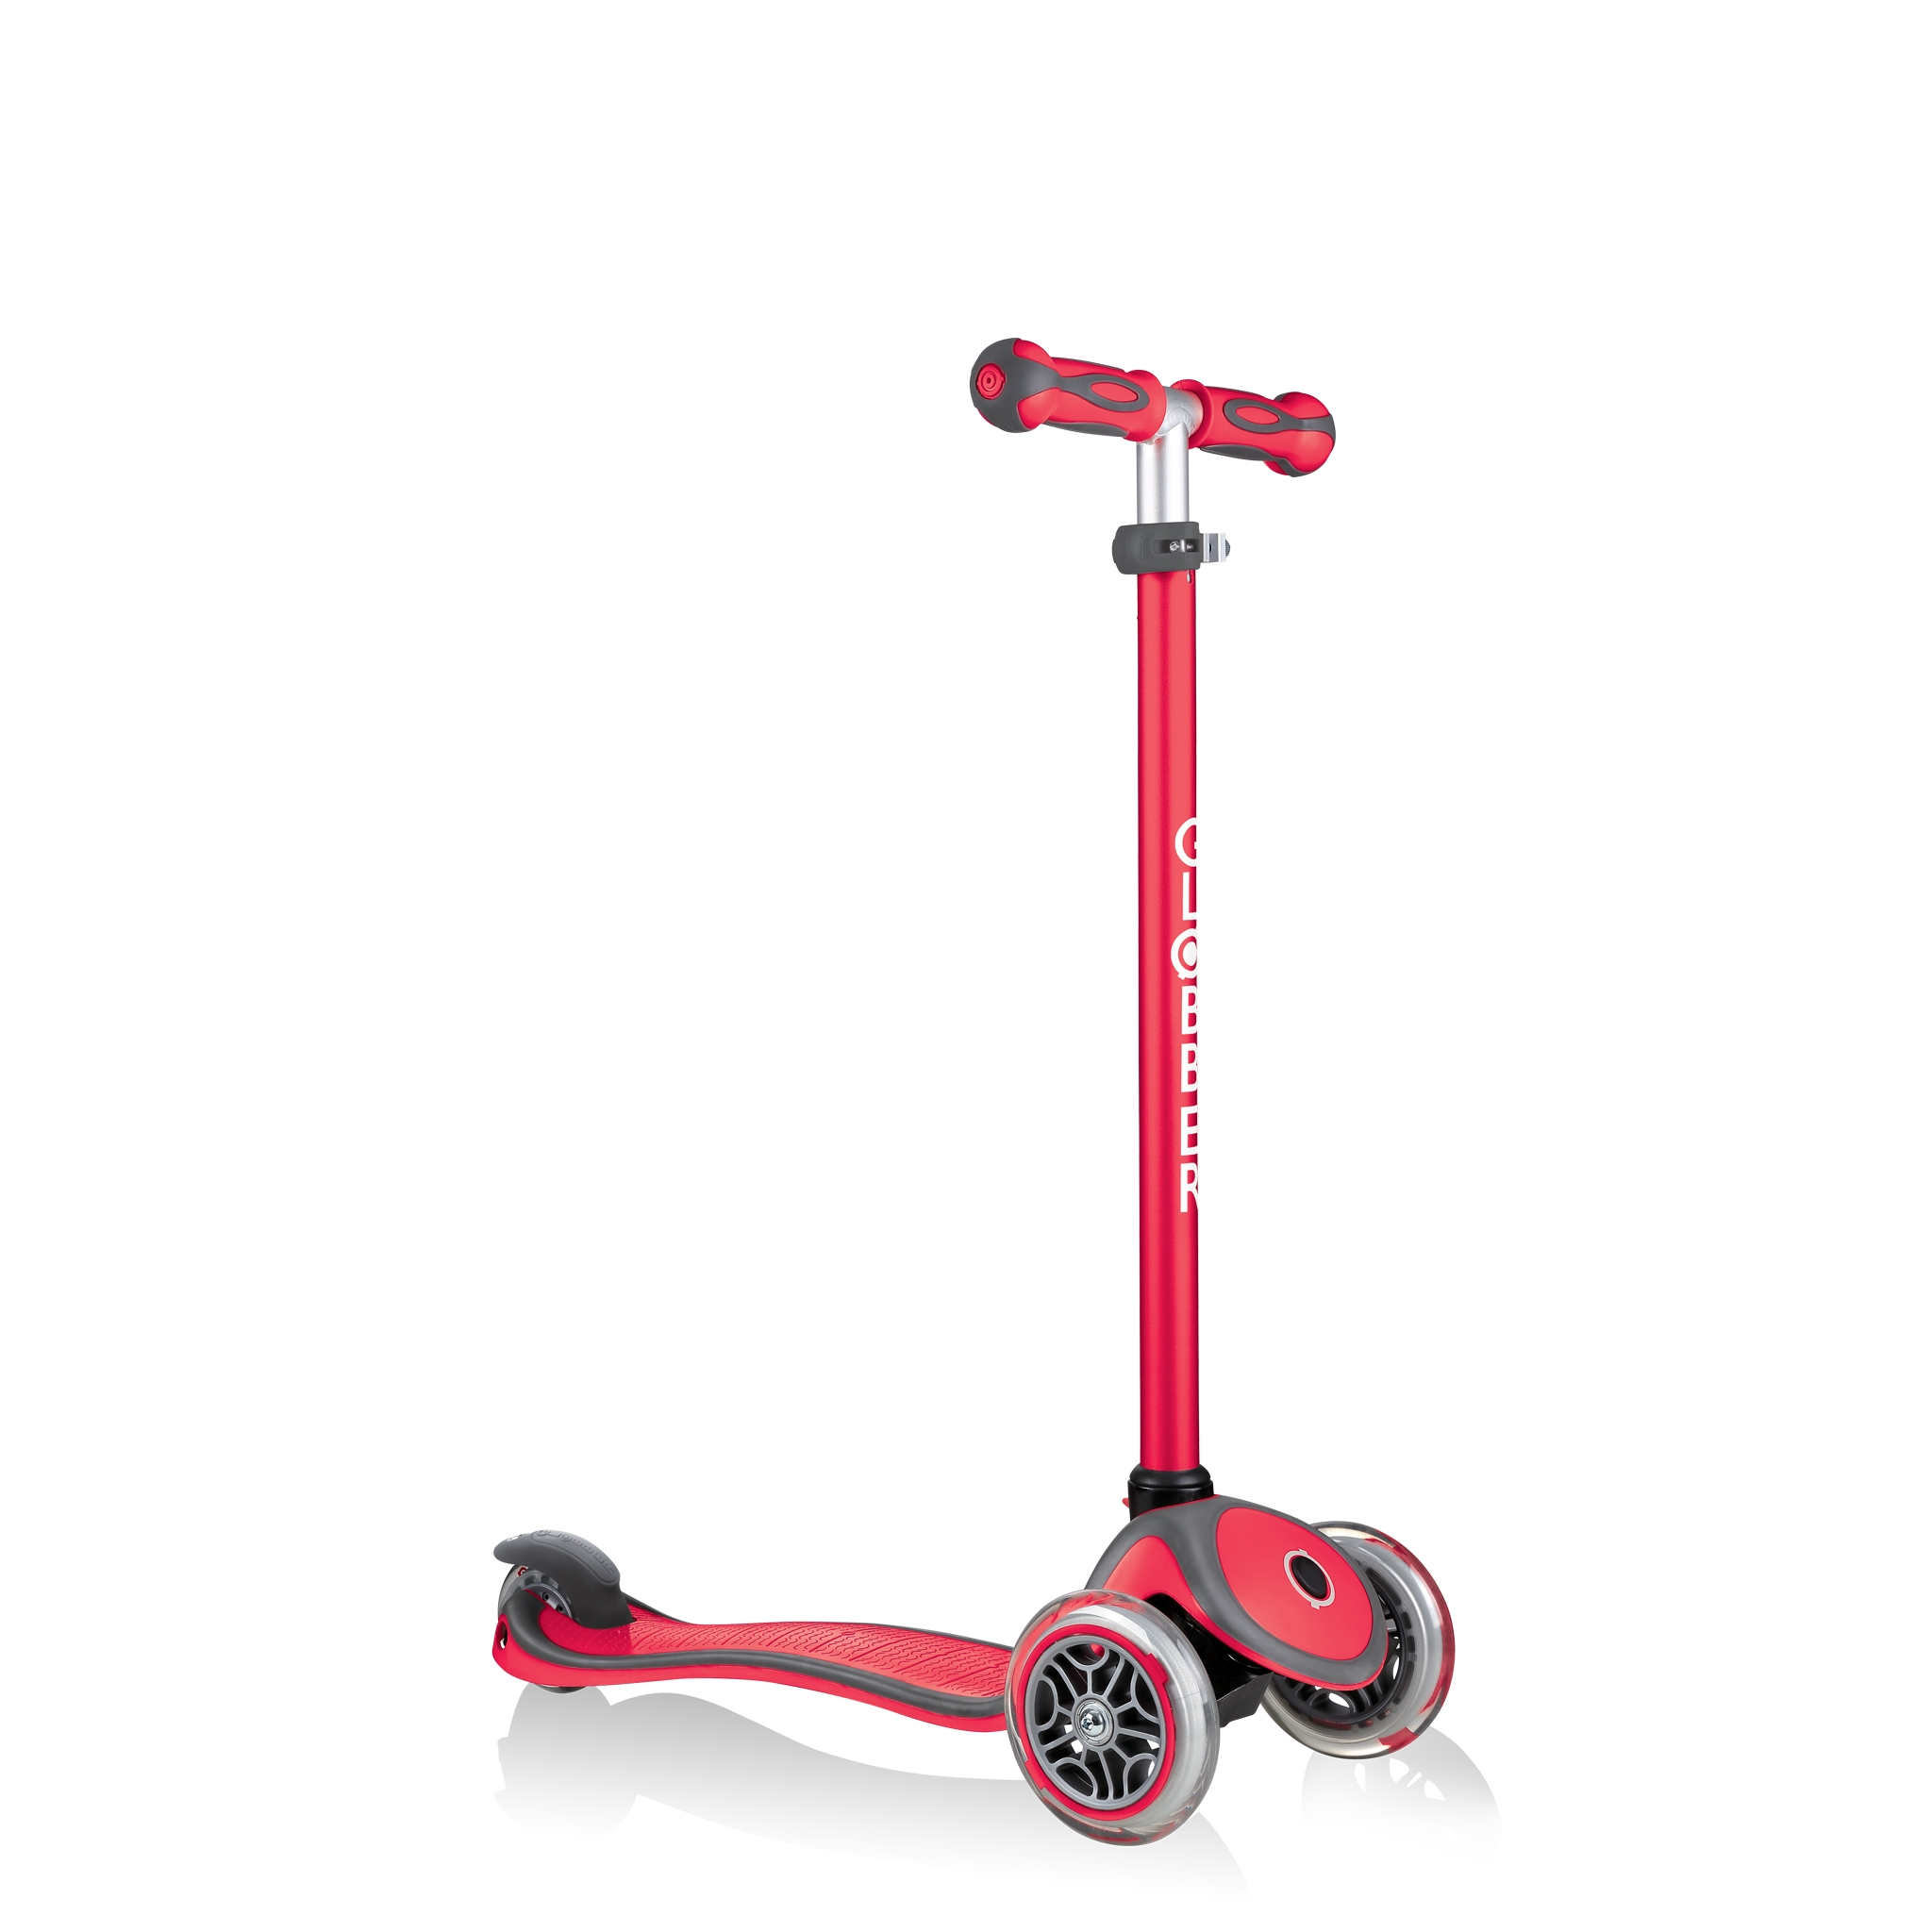 GO-UP-COMFORT-PLAY-ride-on-walking-bike-scooter-all-in-one-with-light-and-sound-module_new-red 4